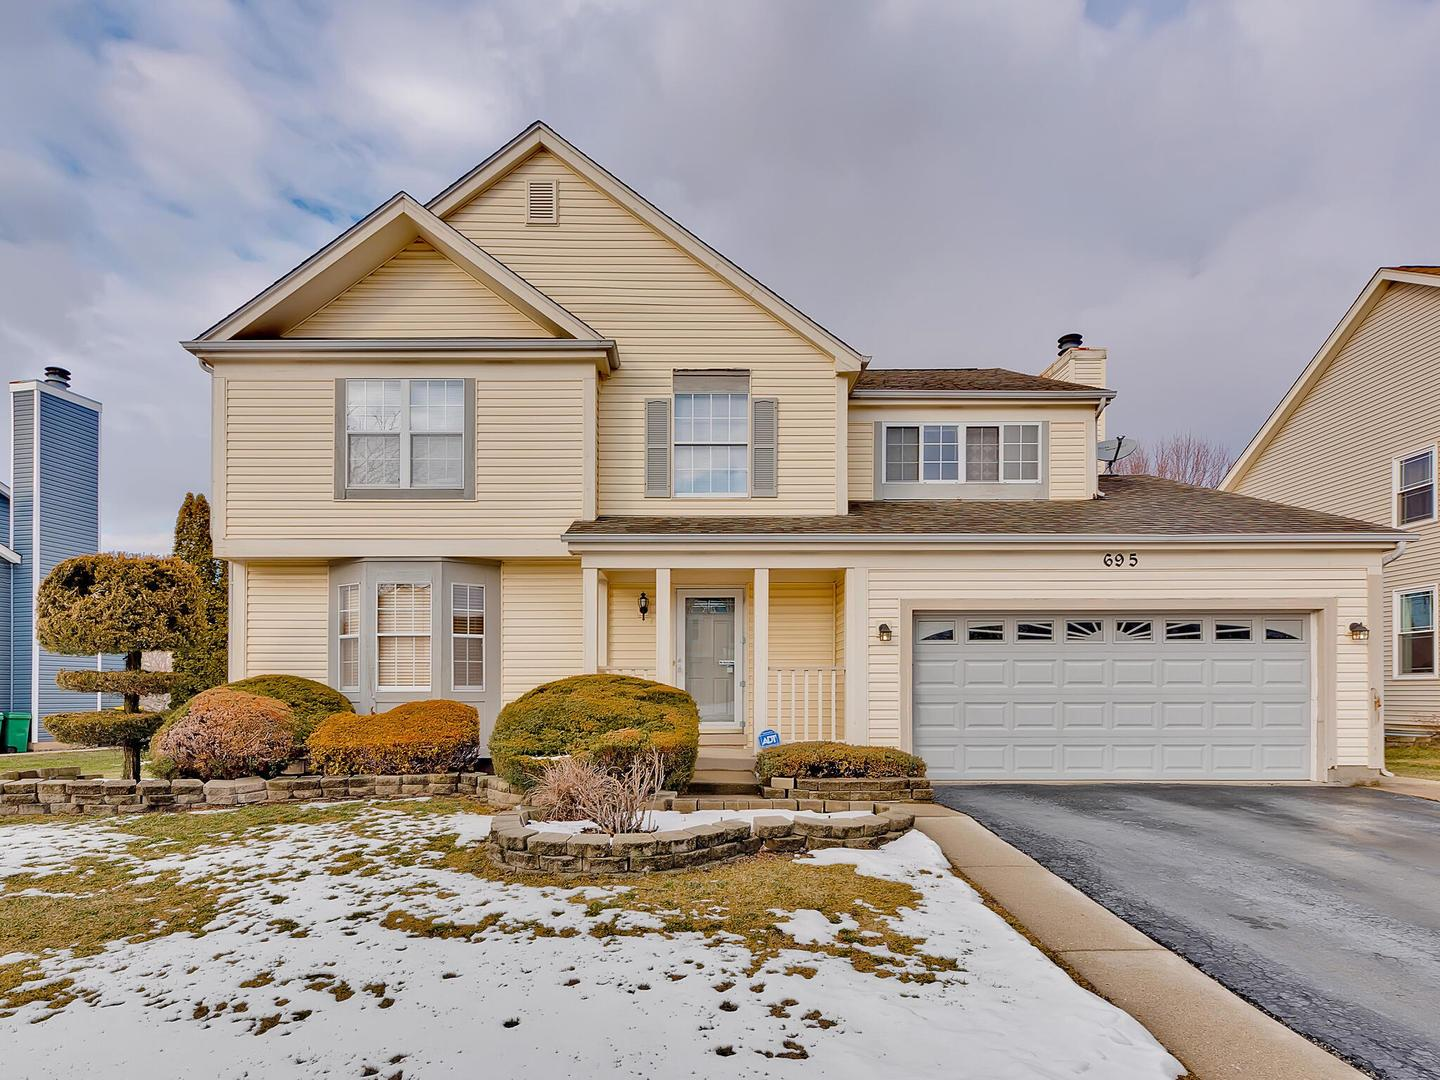 695 Mayfair Drive, Carol Stream, IL 60188 - #: 10974465